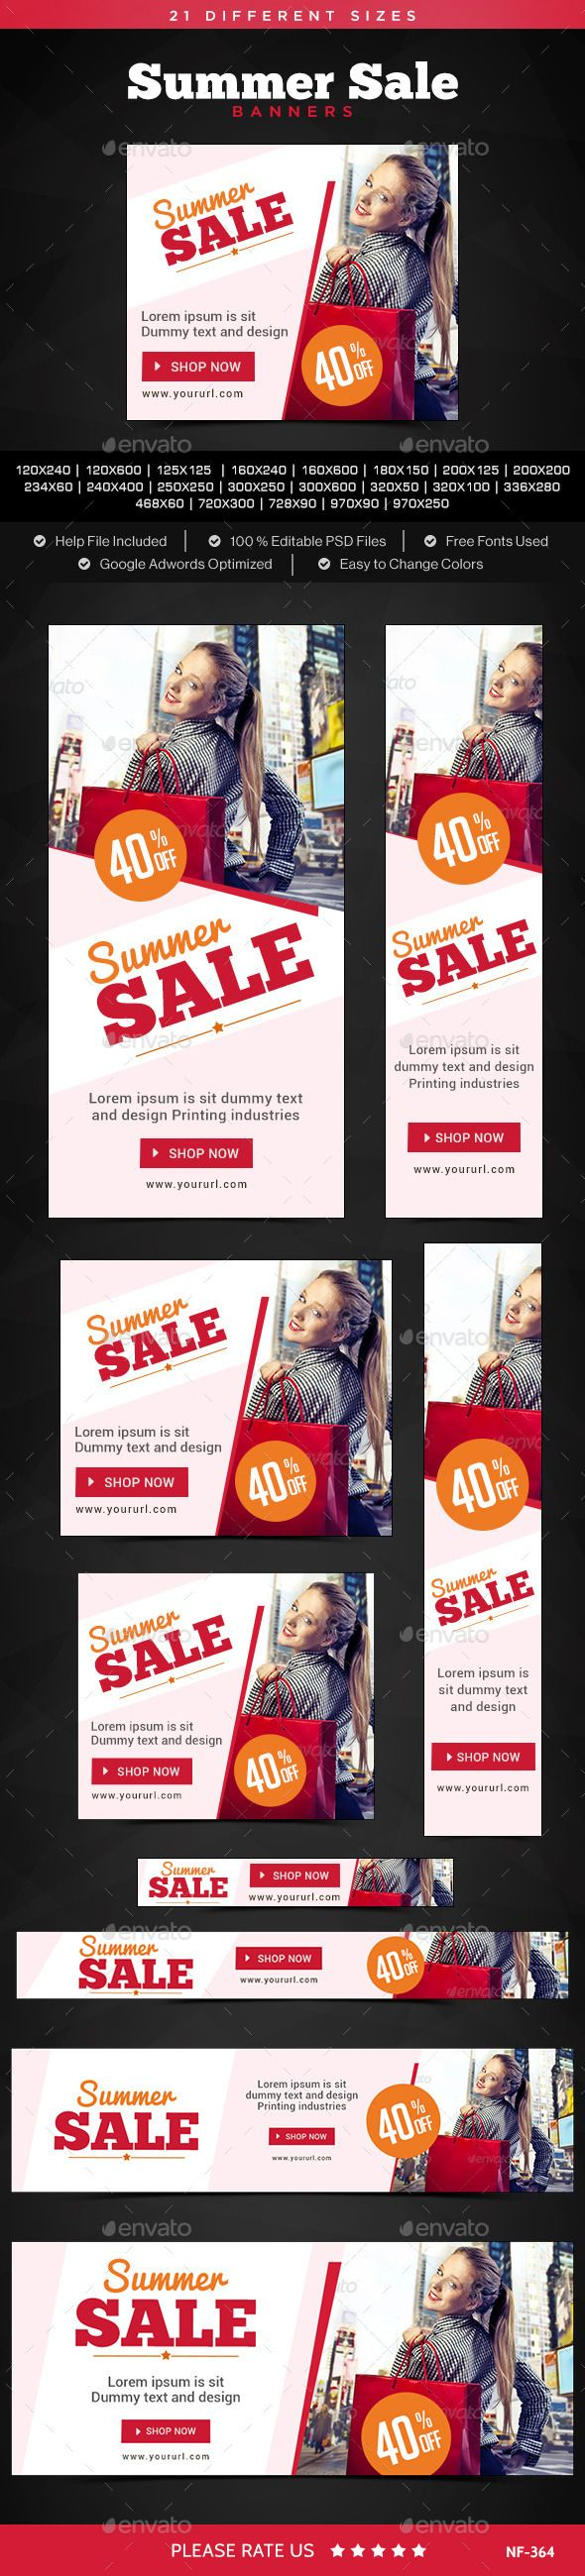 Summer Sale Banners Template #design Download: http://graphicriver.net/item/summer-sale-banners/11380385?ref=ksioks